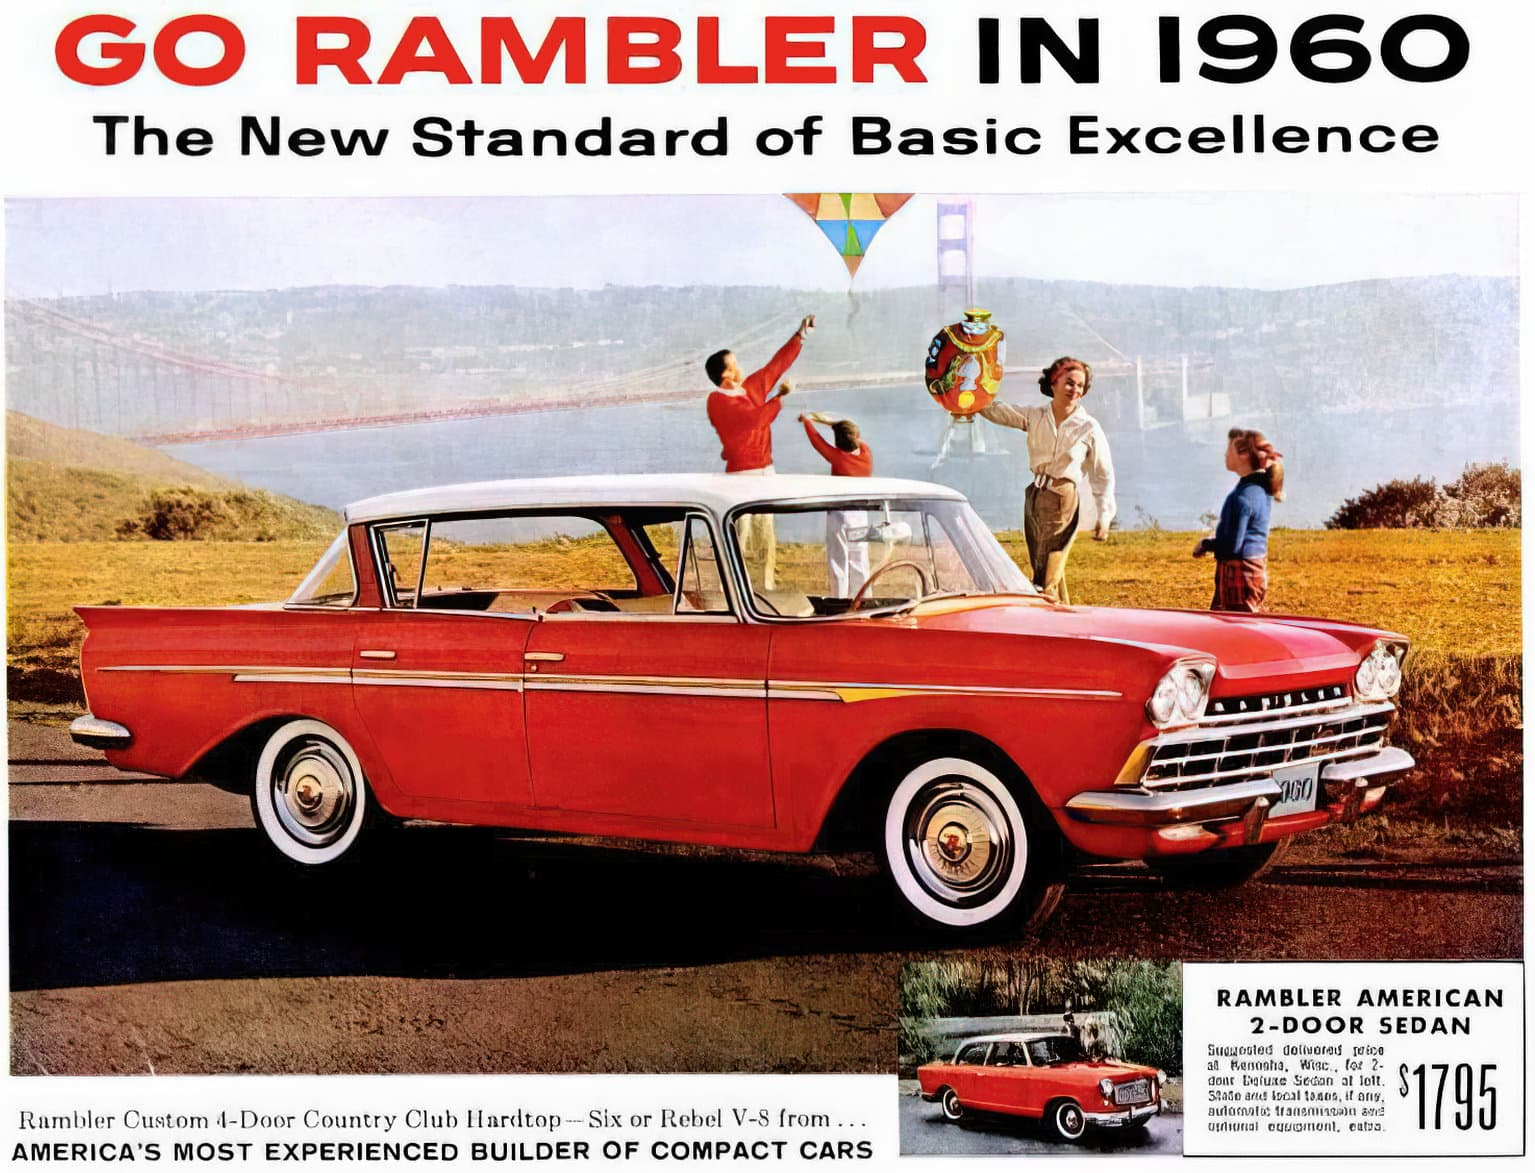 1960 Rambler cars - Golden Gate Bridge